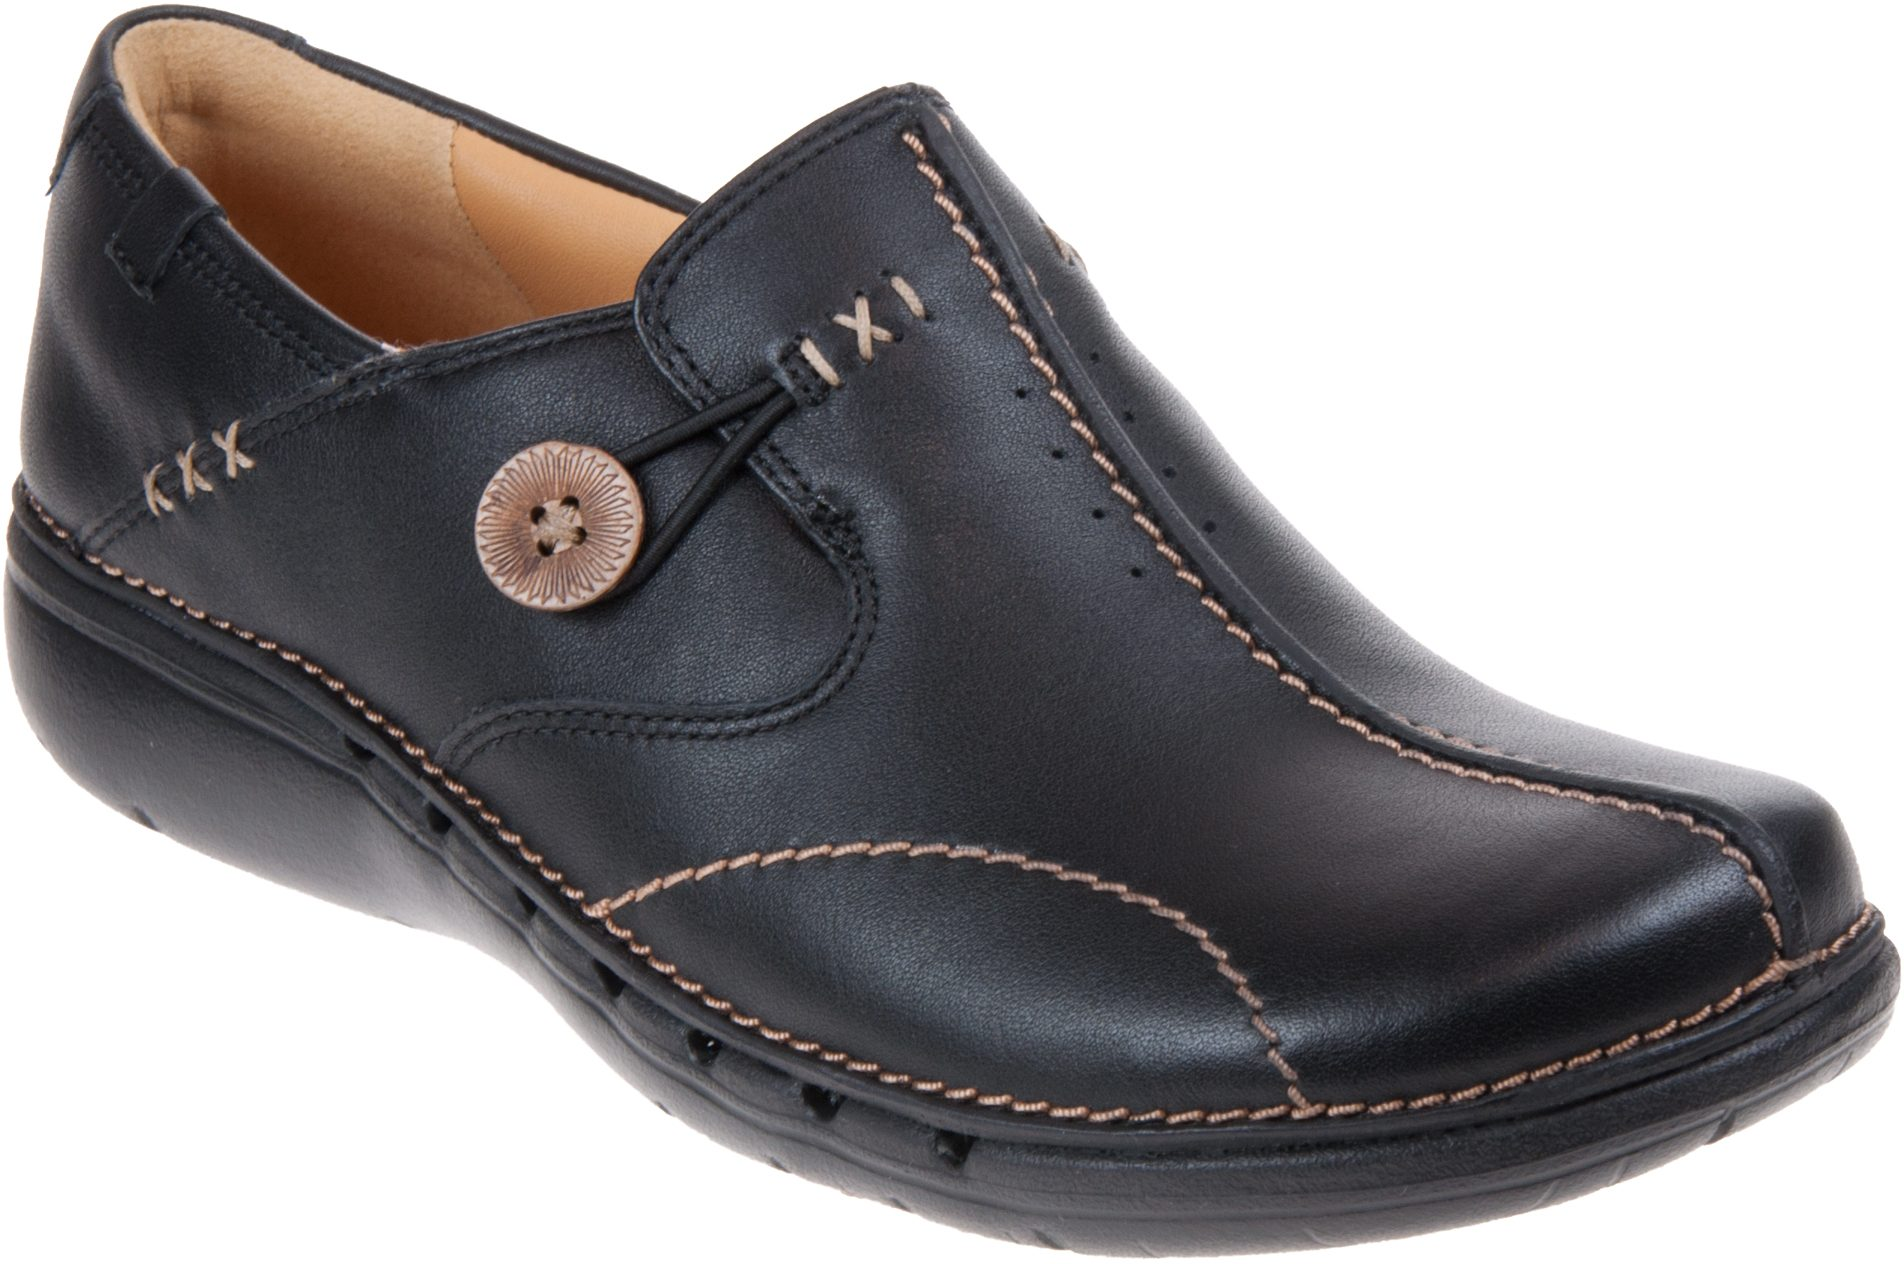 e266f5edc97a Clarks Un Loop Black Leather 20312837 - Everyday Shoes - Humphries Shoes